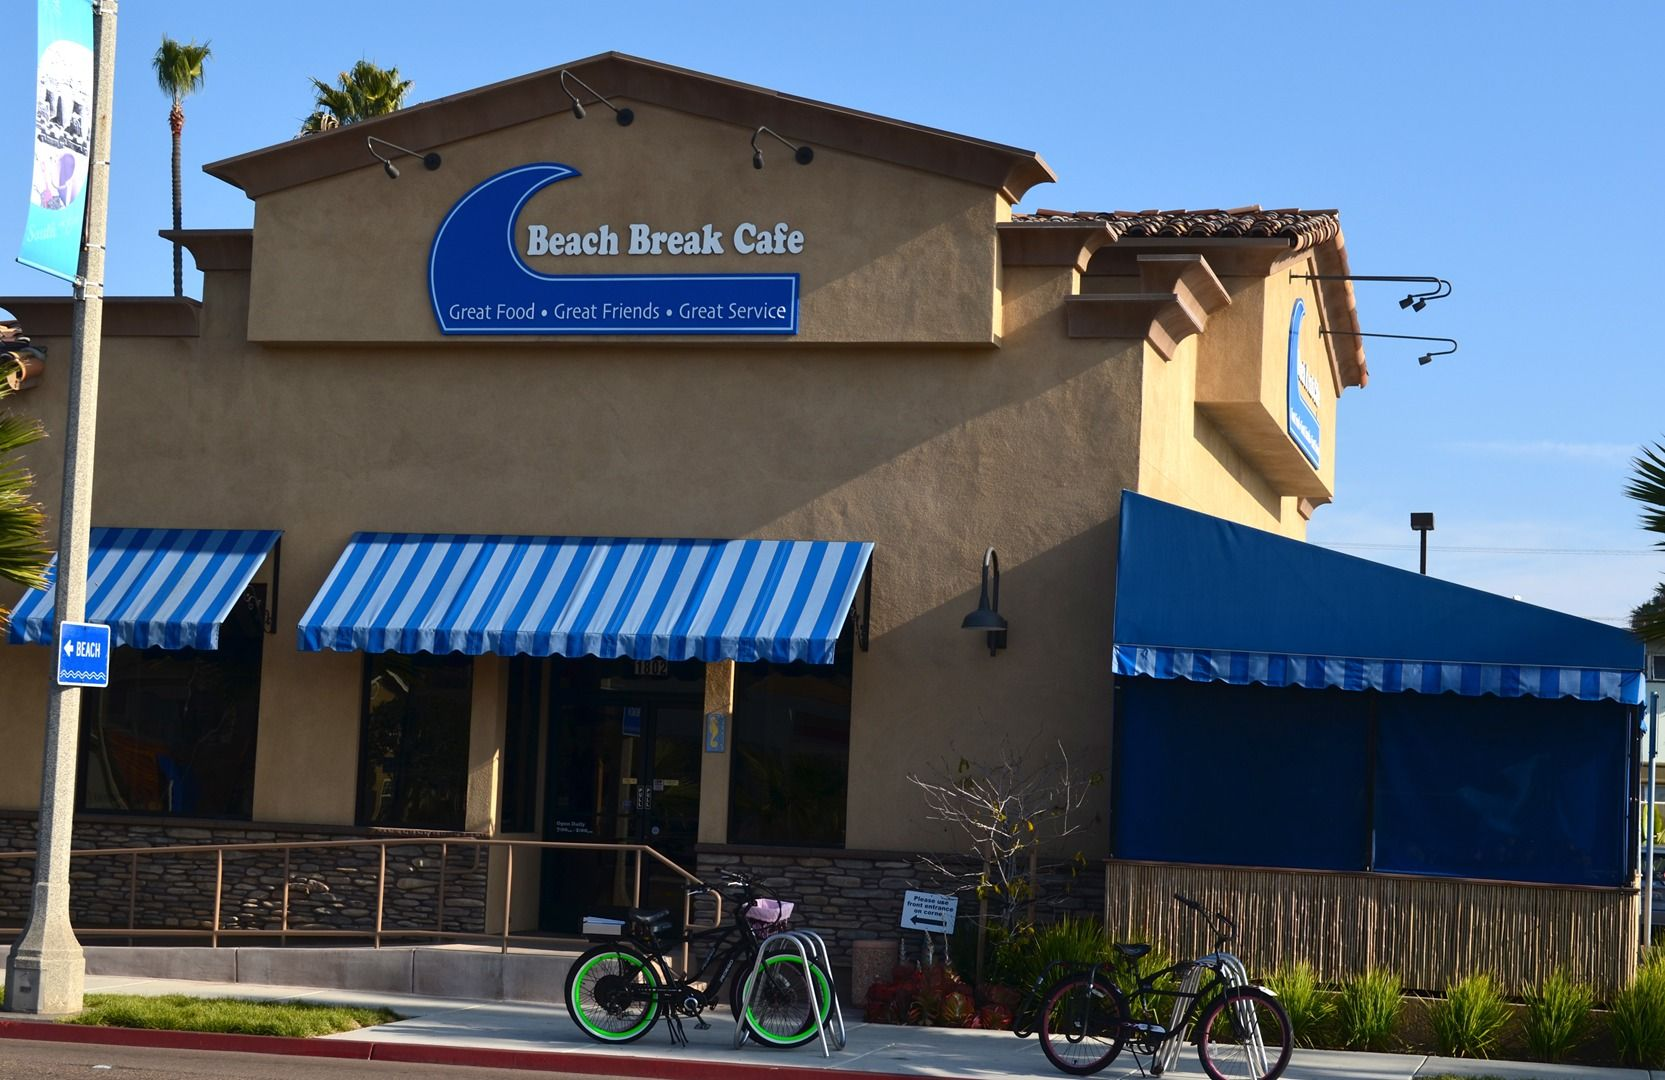 Beach Break Cafe A Top Rated Local Restaurant In Oceanside California Food Travel Vacation